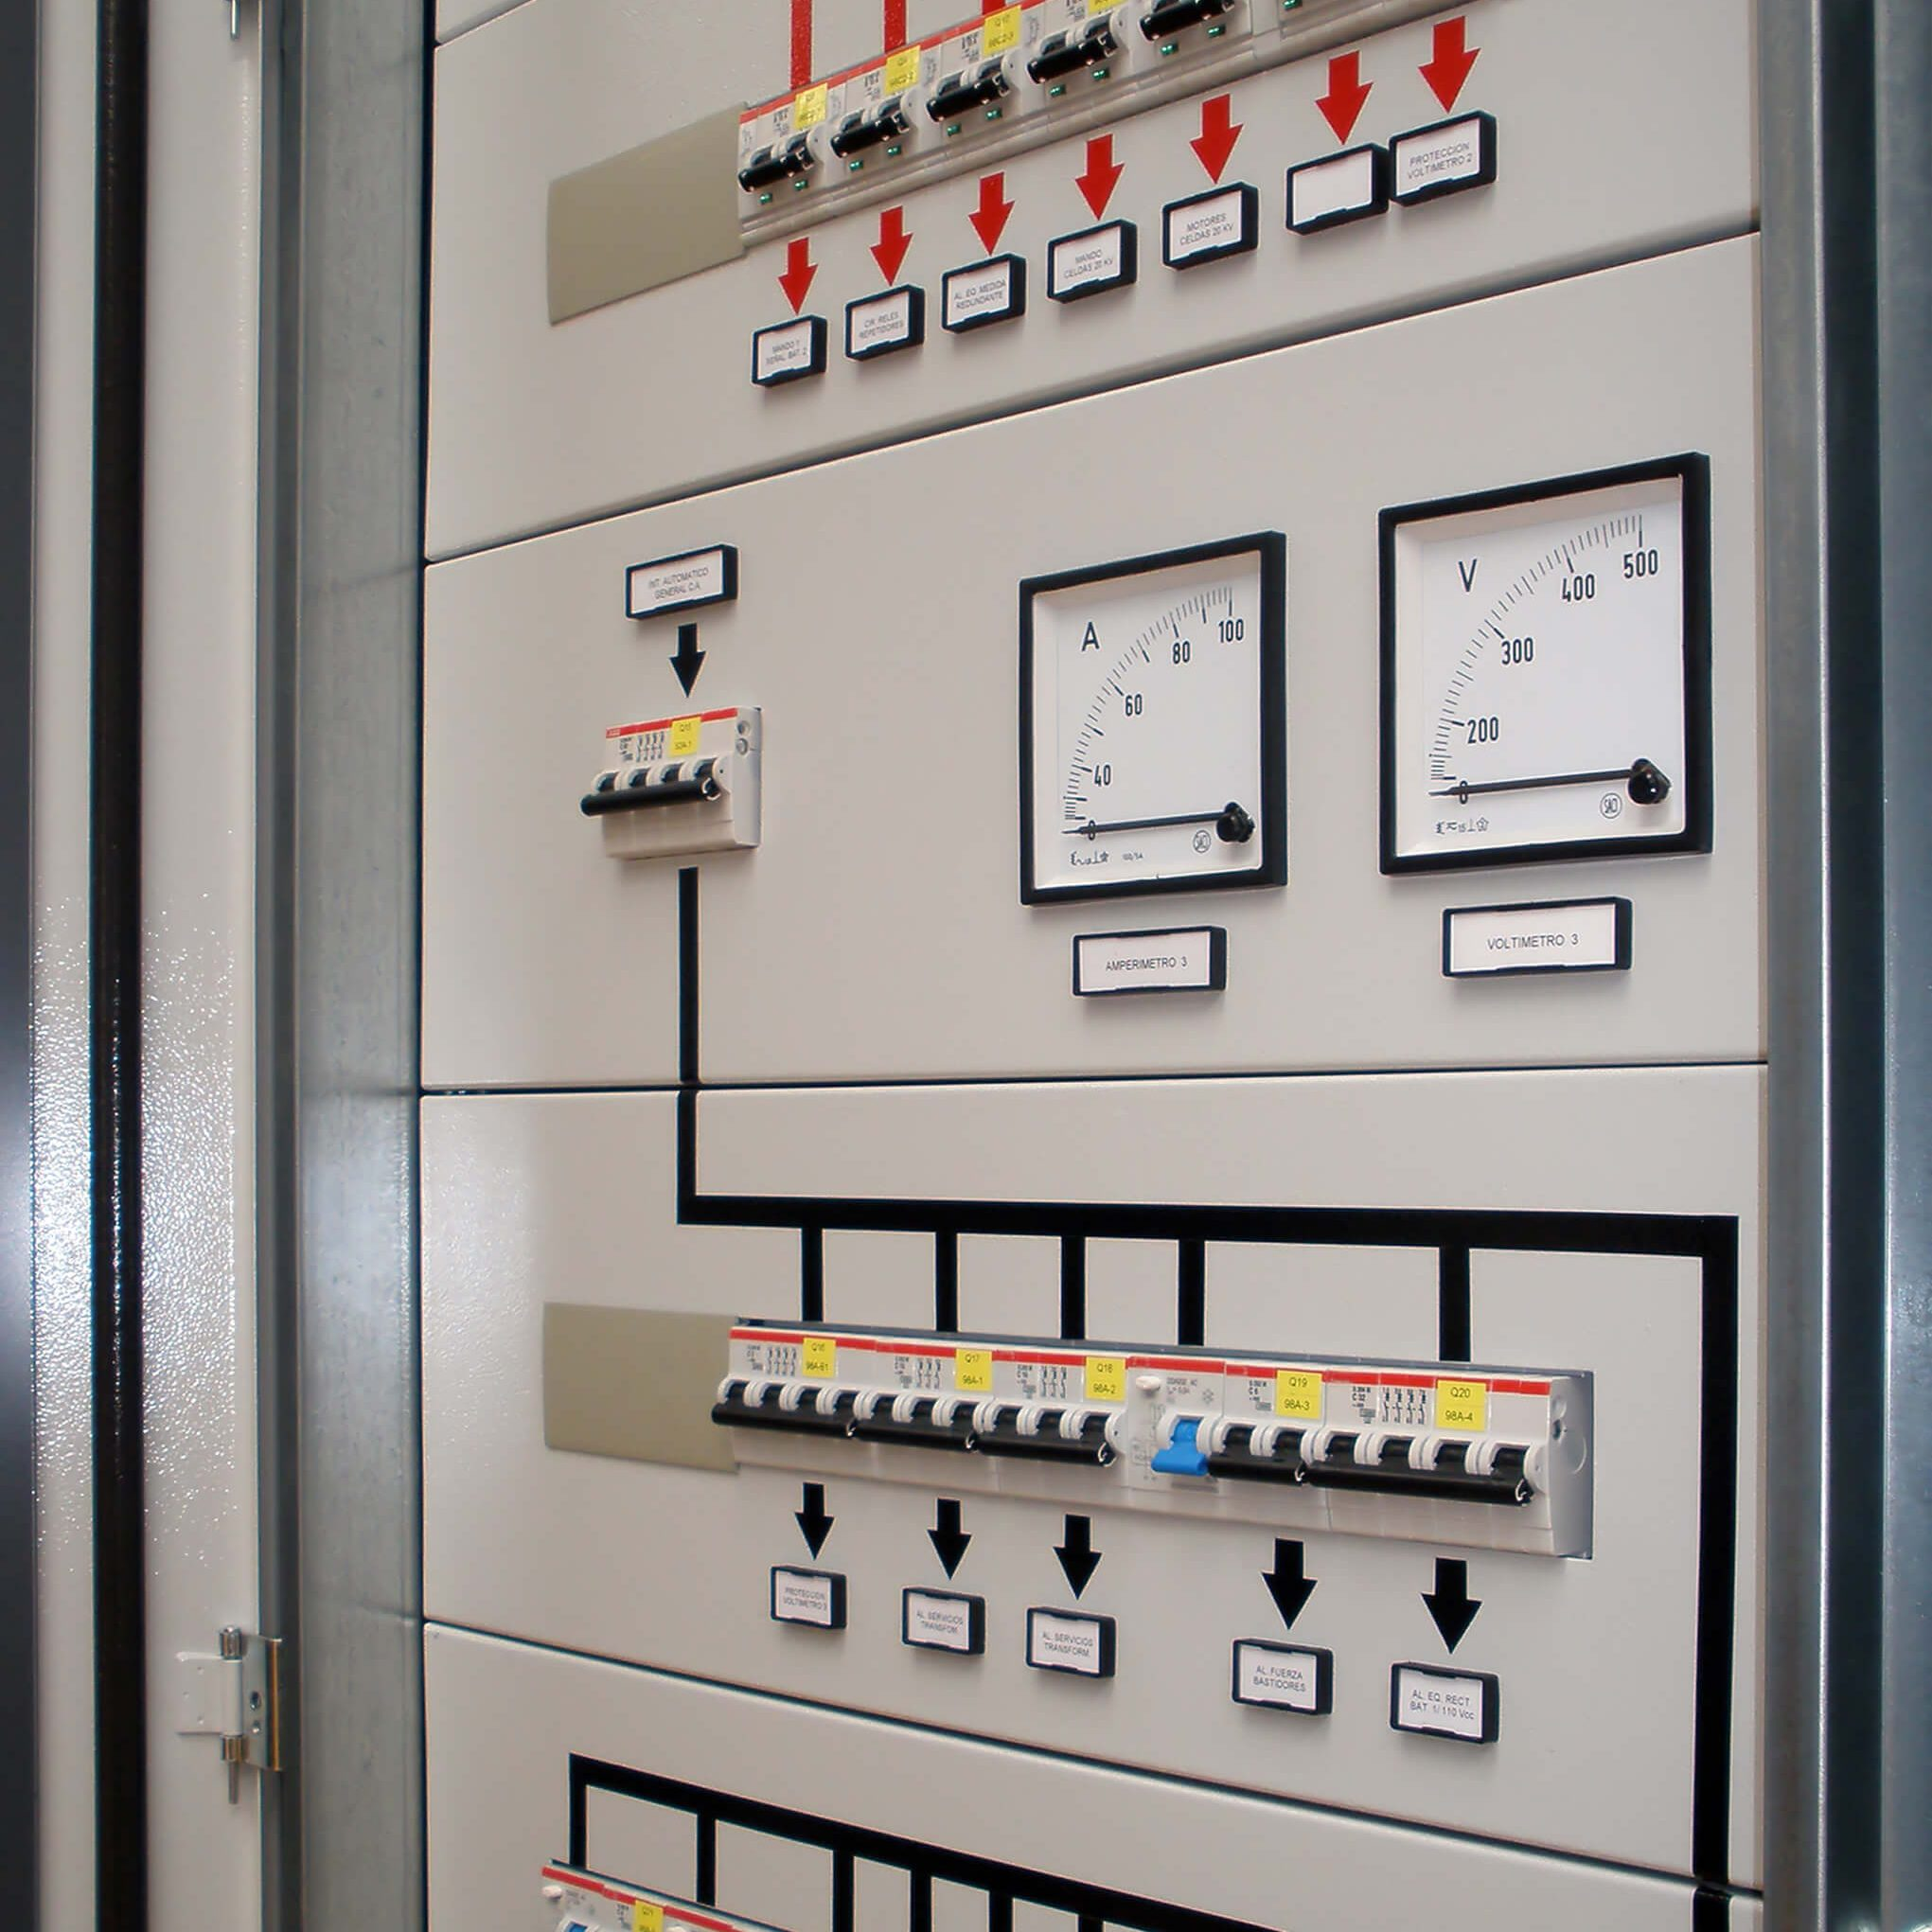 stock-photo-electrical-front-panel-equipment-36487819